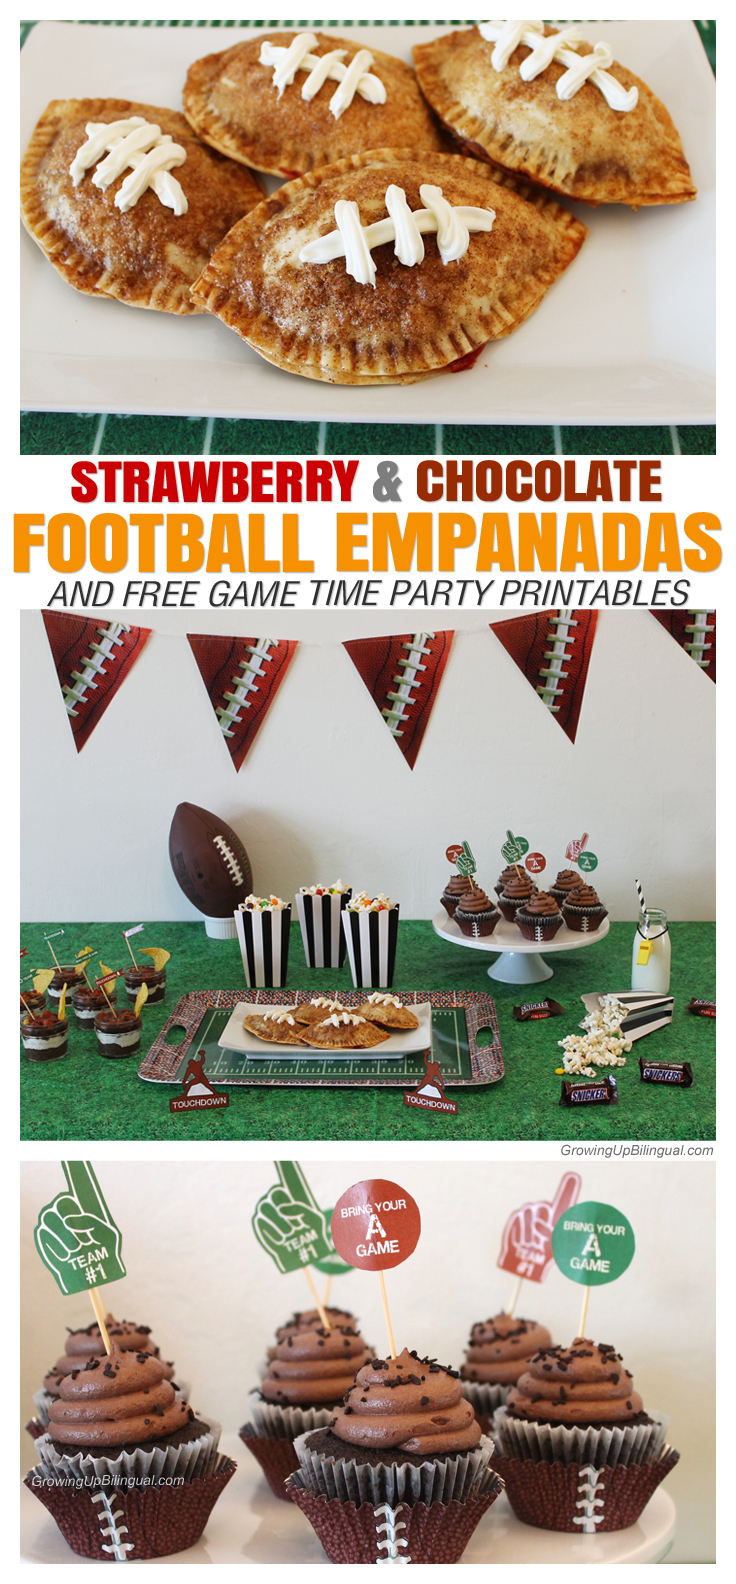 Great football party ideas! So easy!